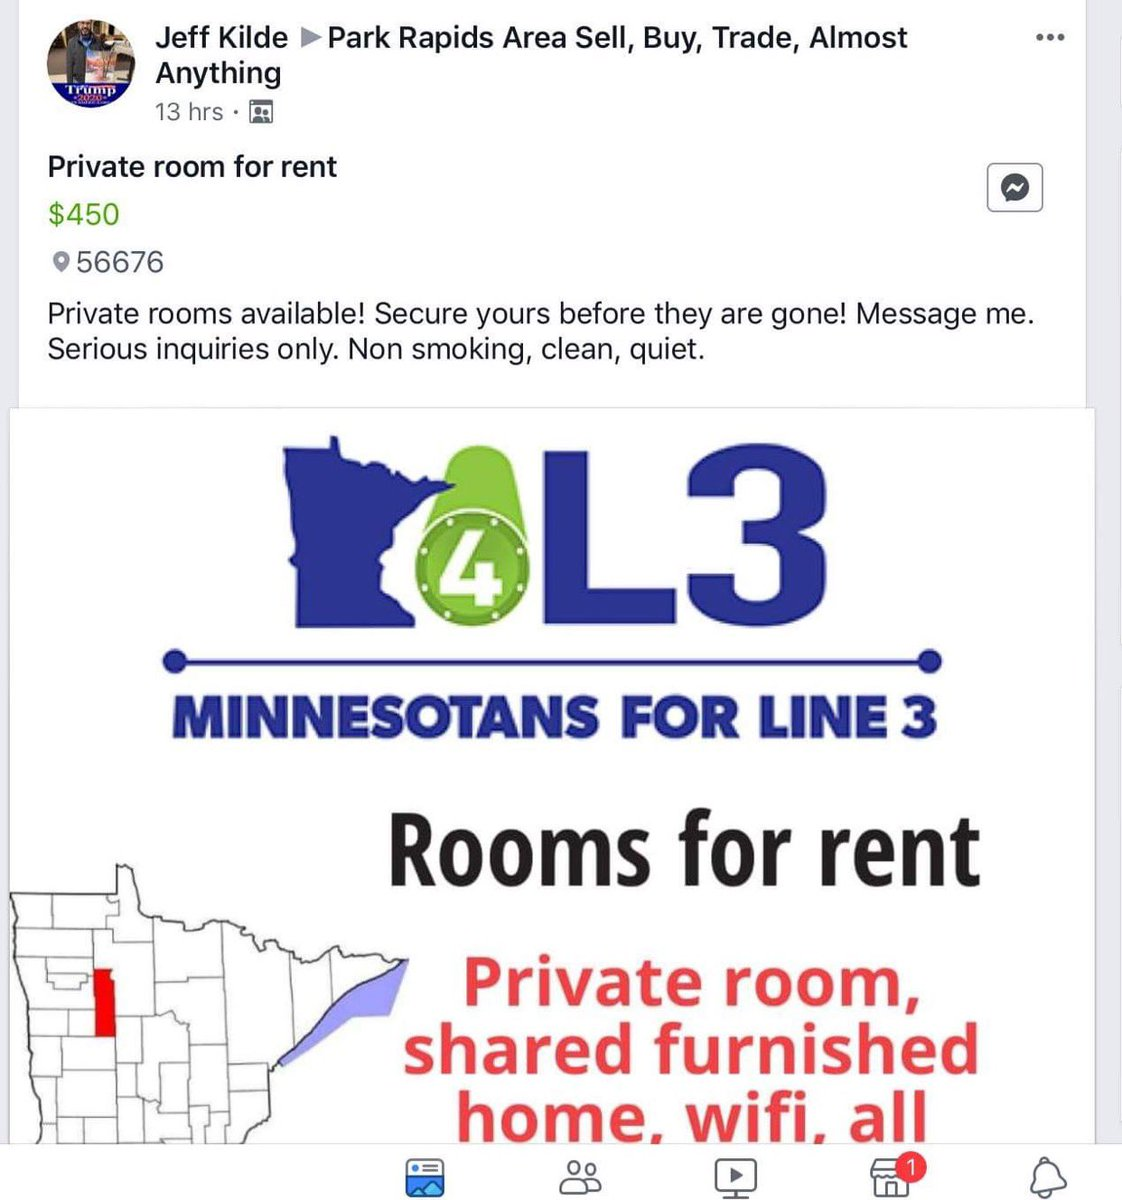 Are we going to protect our communities and children @GovTimWalz @Tim_Walz and stop the #mancamps for #Enbridge LN3 during a pandemic that Minnesotans don't want ... be courageous and #StopLine3 twitter.com/winonaladuke/s…